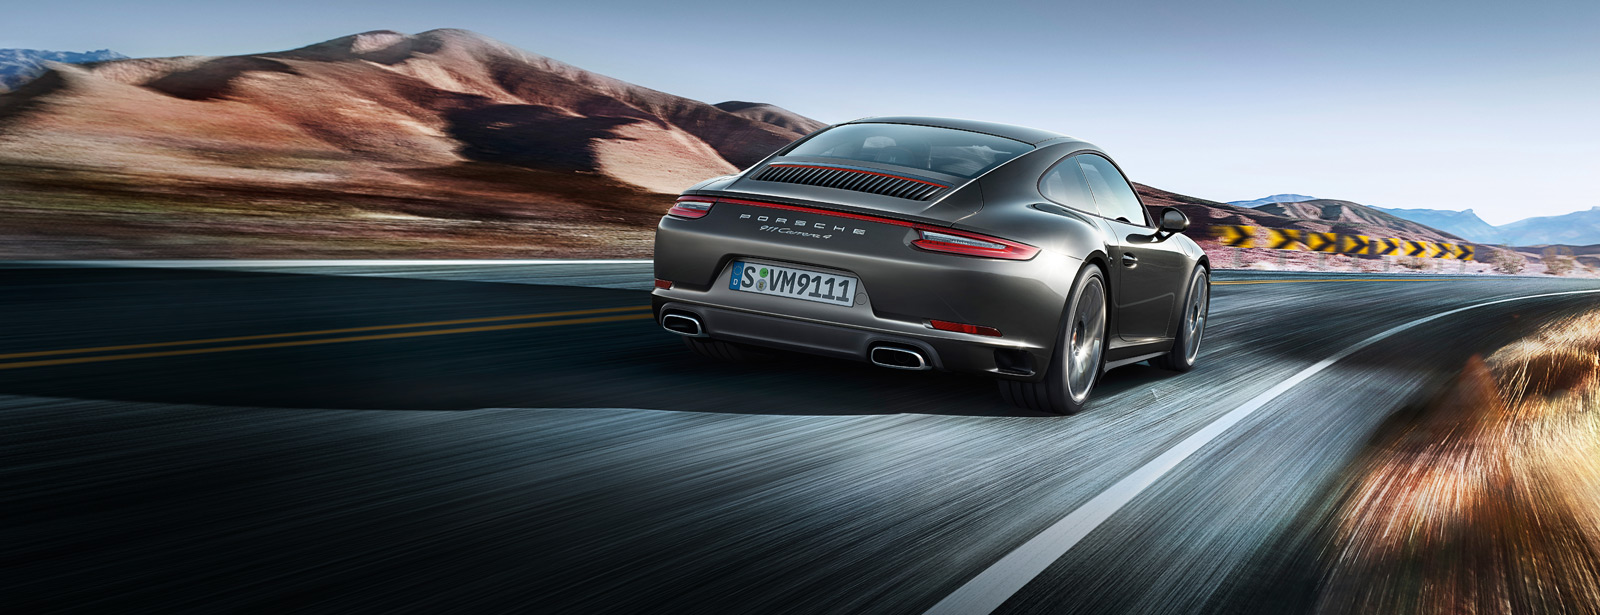 Porsche The new 911 Carrera 4